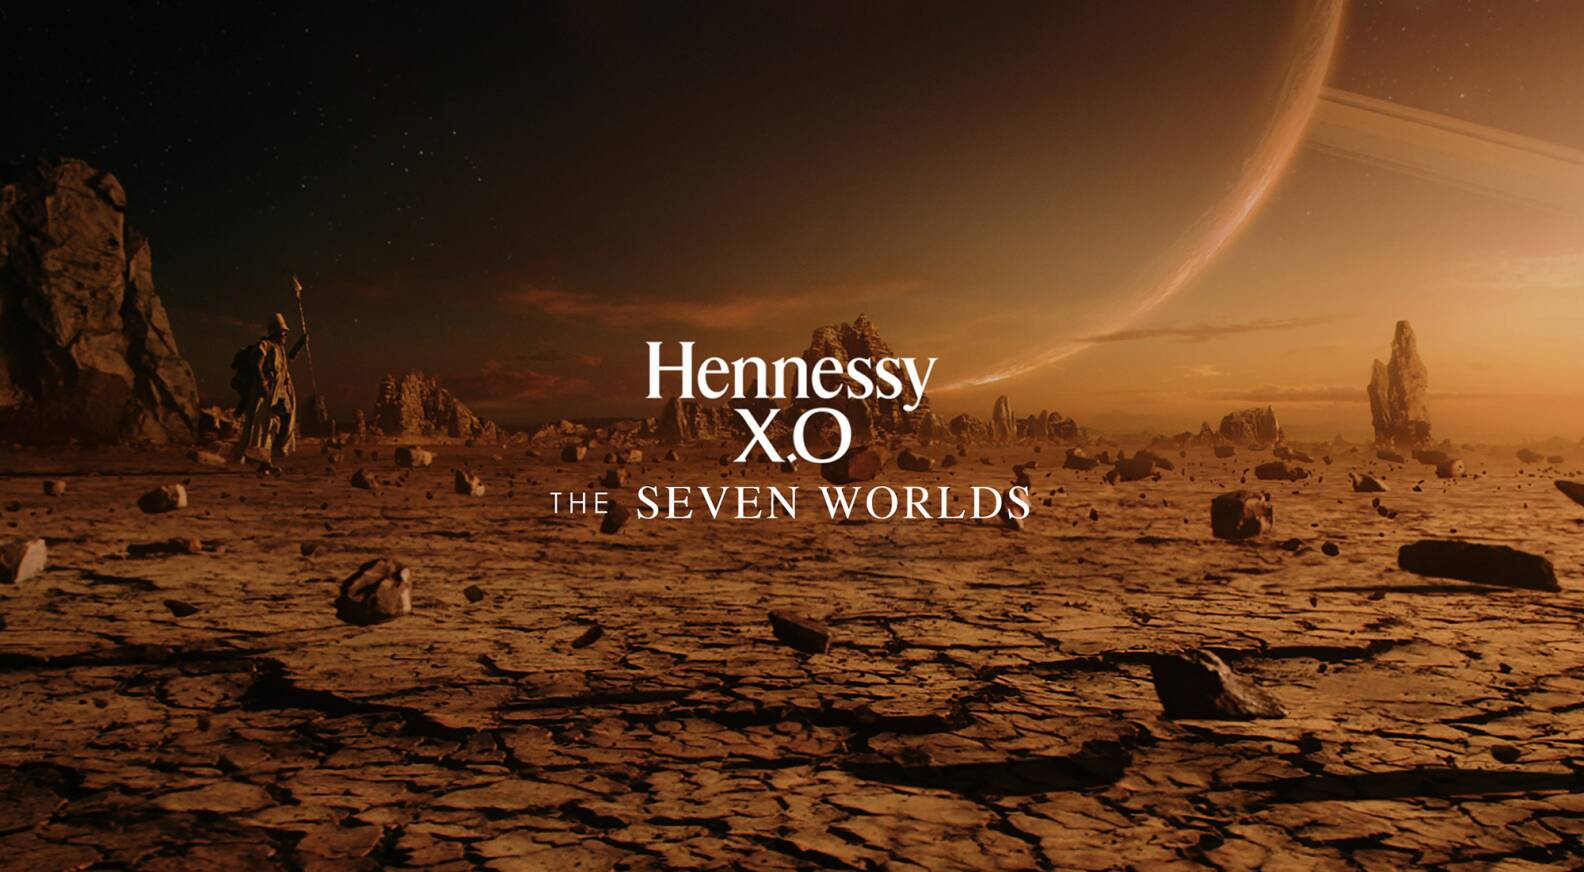 """f0f4cea735ae8 Hennessy unveils """"The Seven Worlds"""", an epic short film by Ridley Scott  exploring the seven tasting notes in its signature cognac Hennessy X.O"""